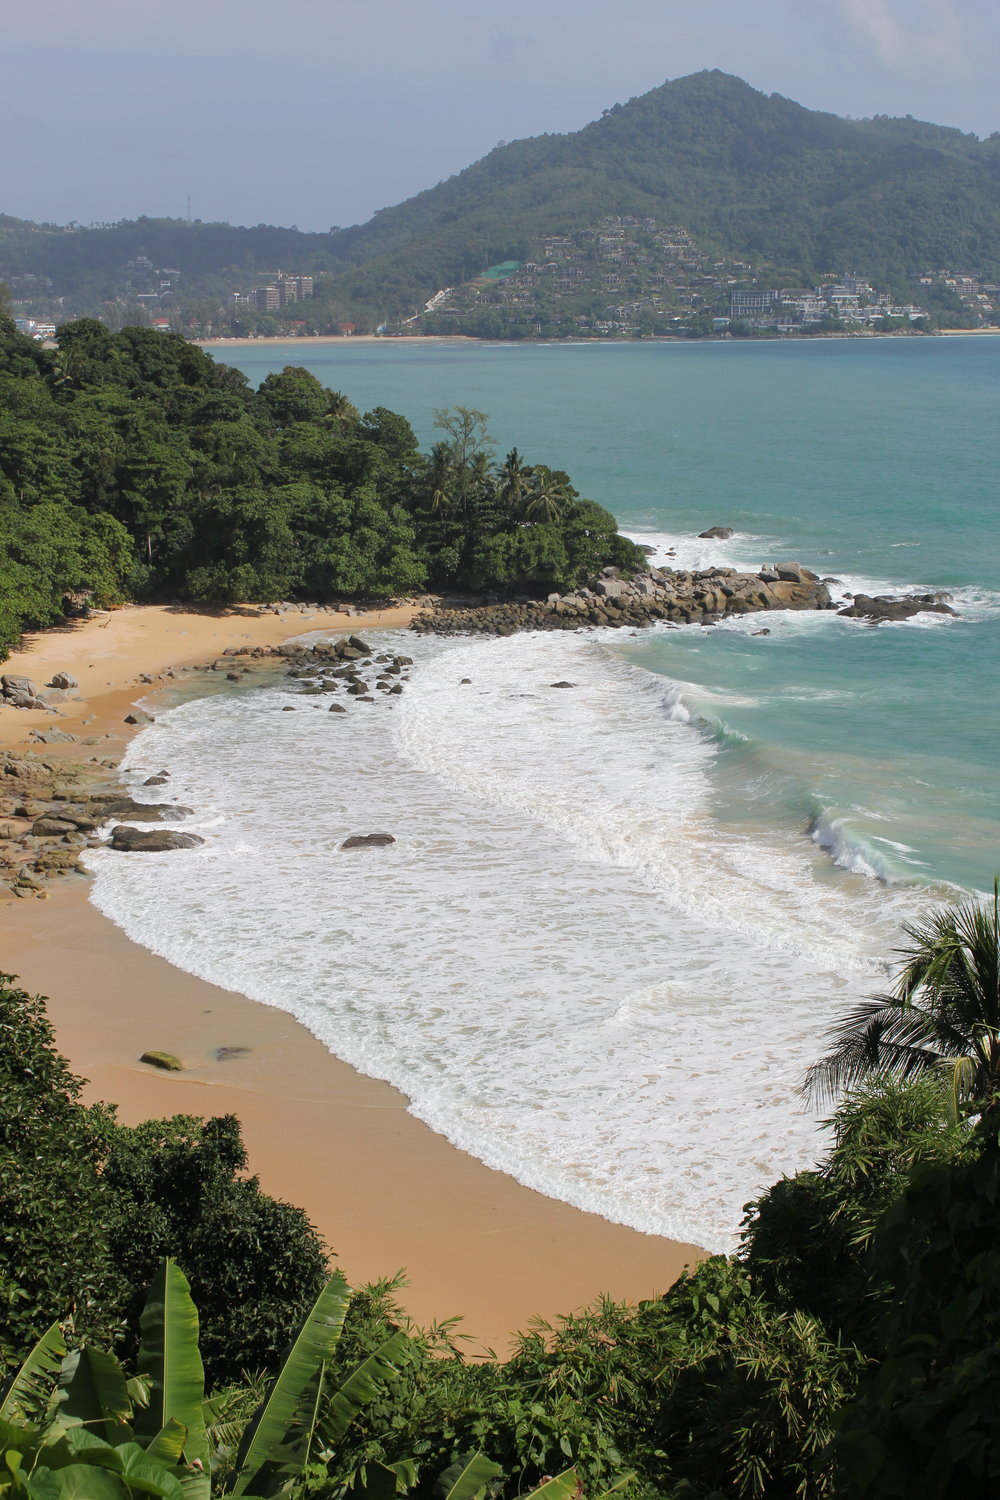 One of the many stunning beaches on Phuket's western side